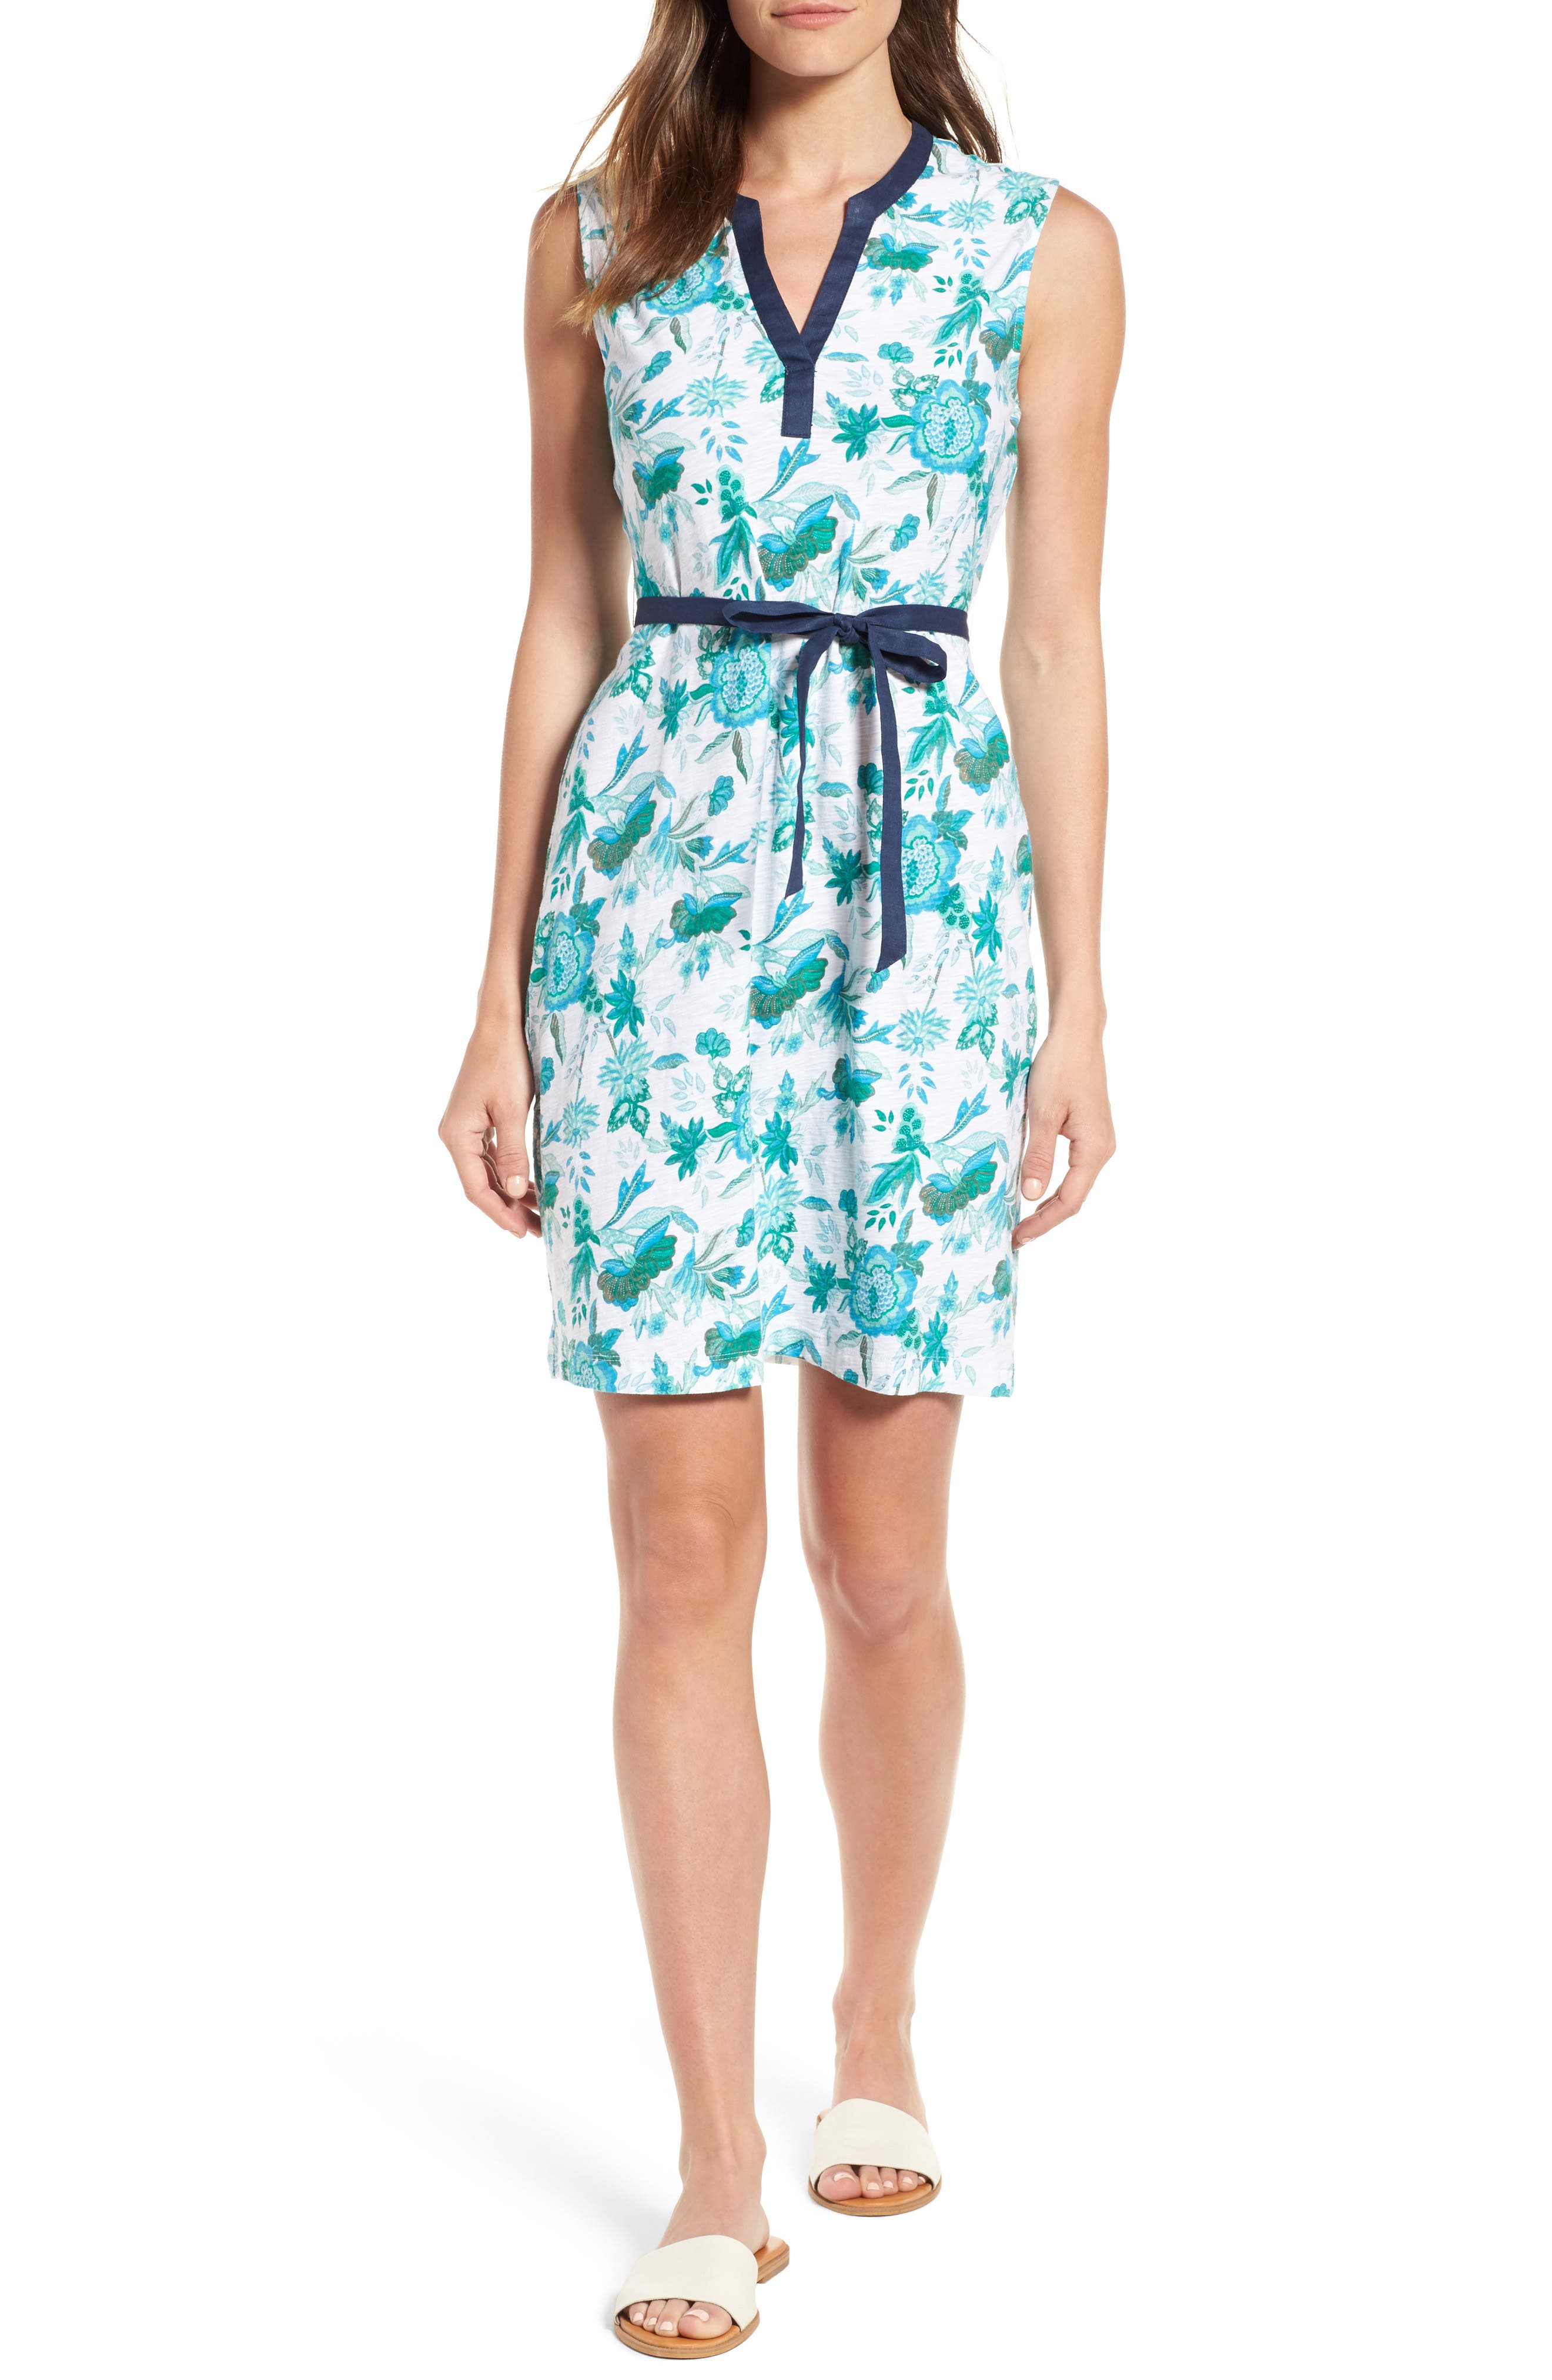 Alternate Image 1 Selected - Tommy Bahama Naxos Blooms Short Jersey Dress